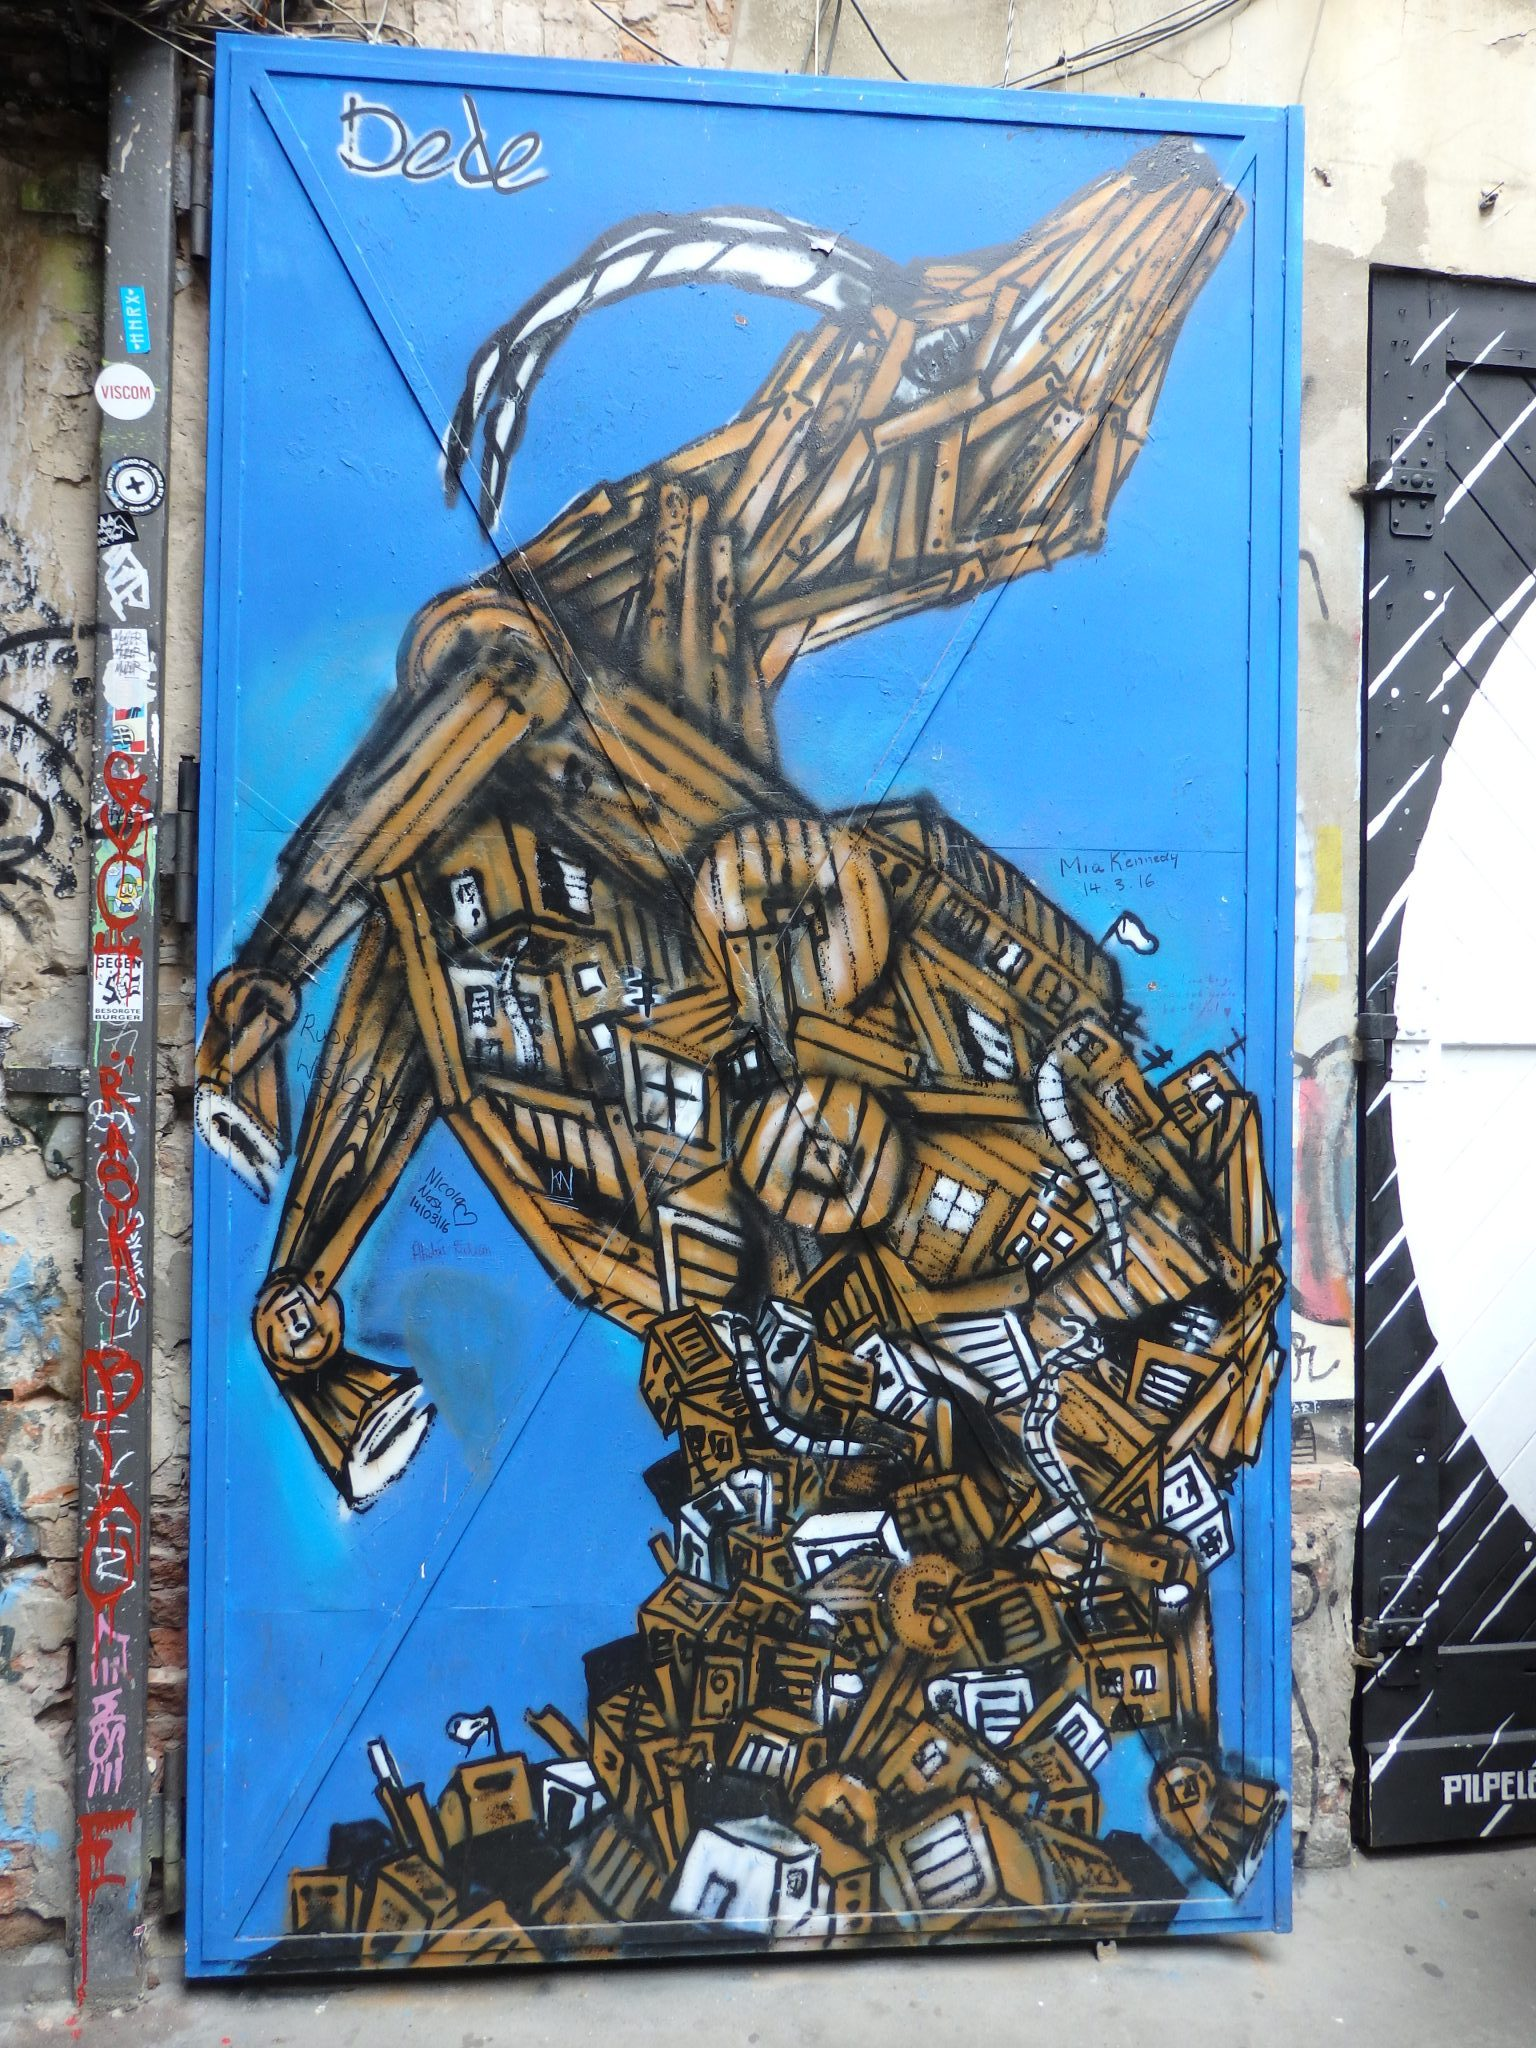 Street art, by Dede, an Israeli artist, at Haus Schwarzenberg, Berlin